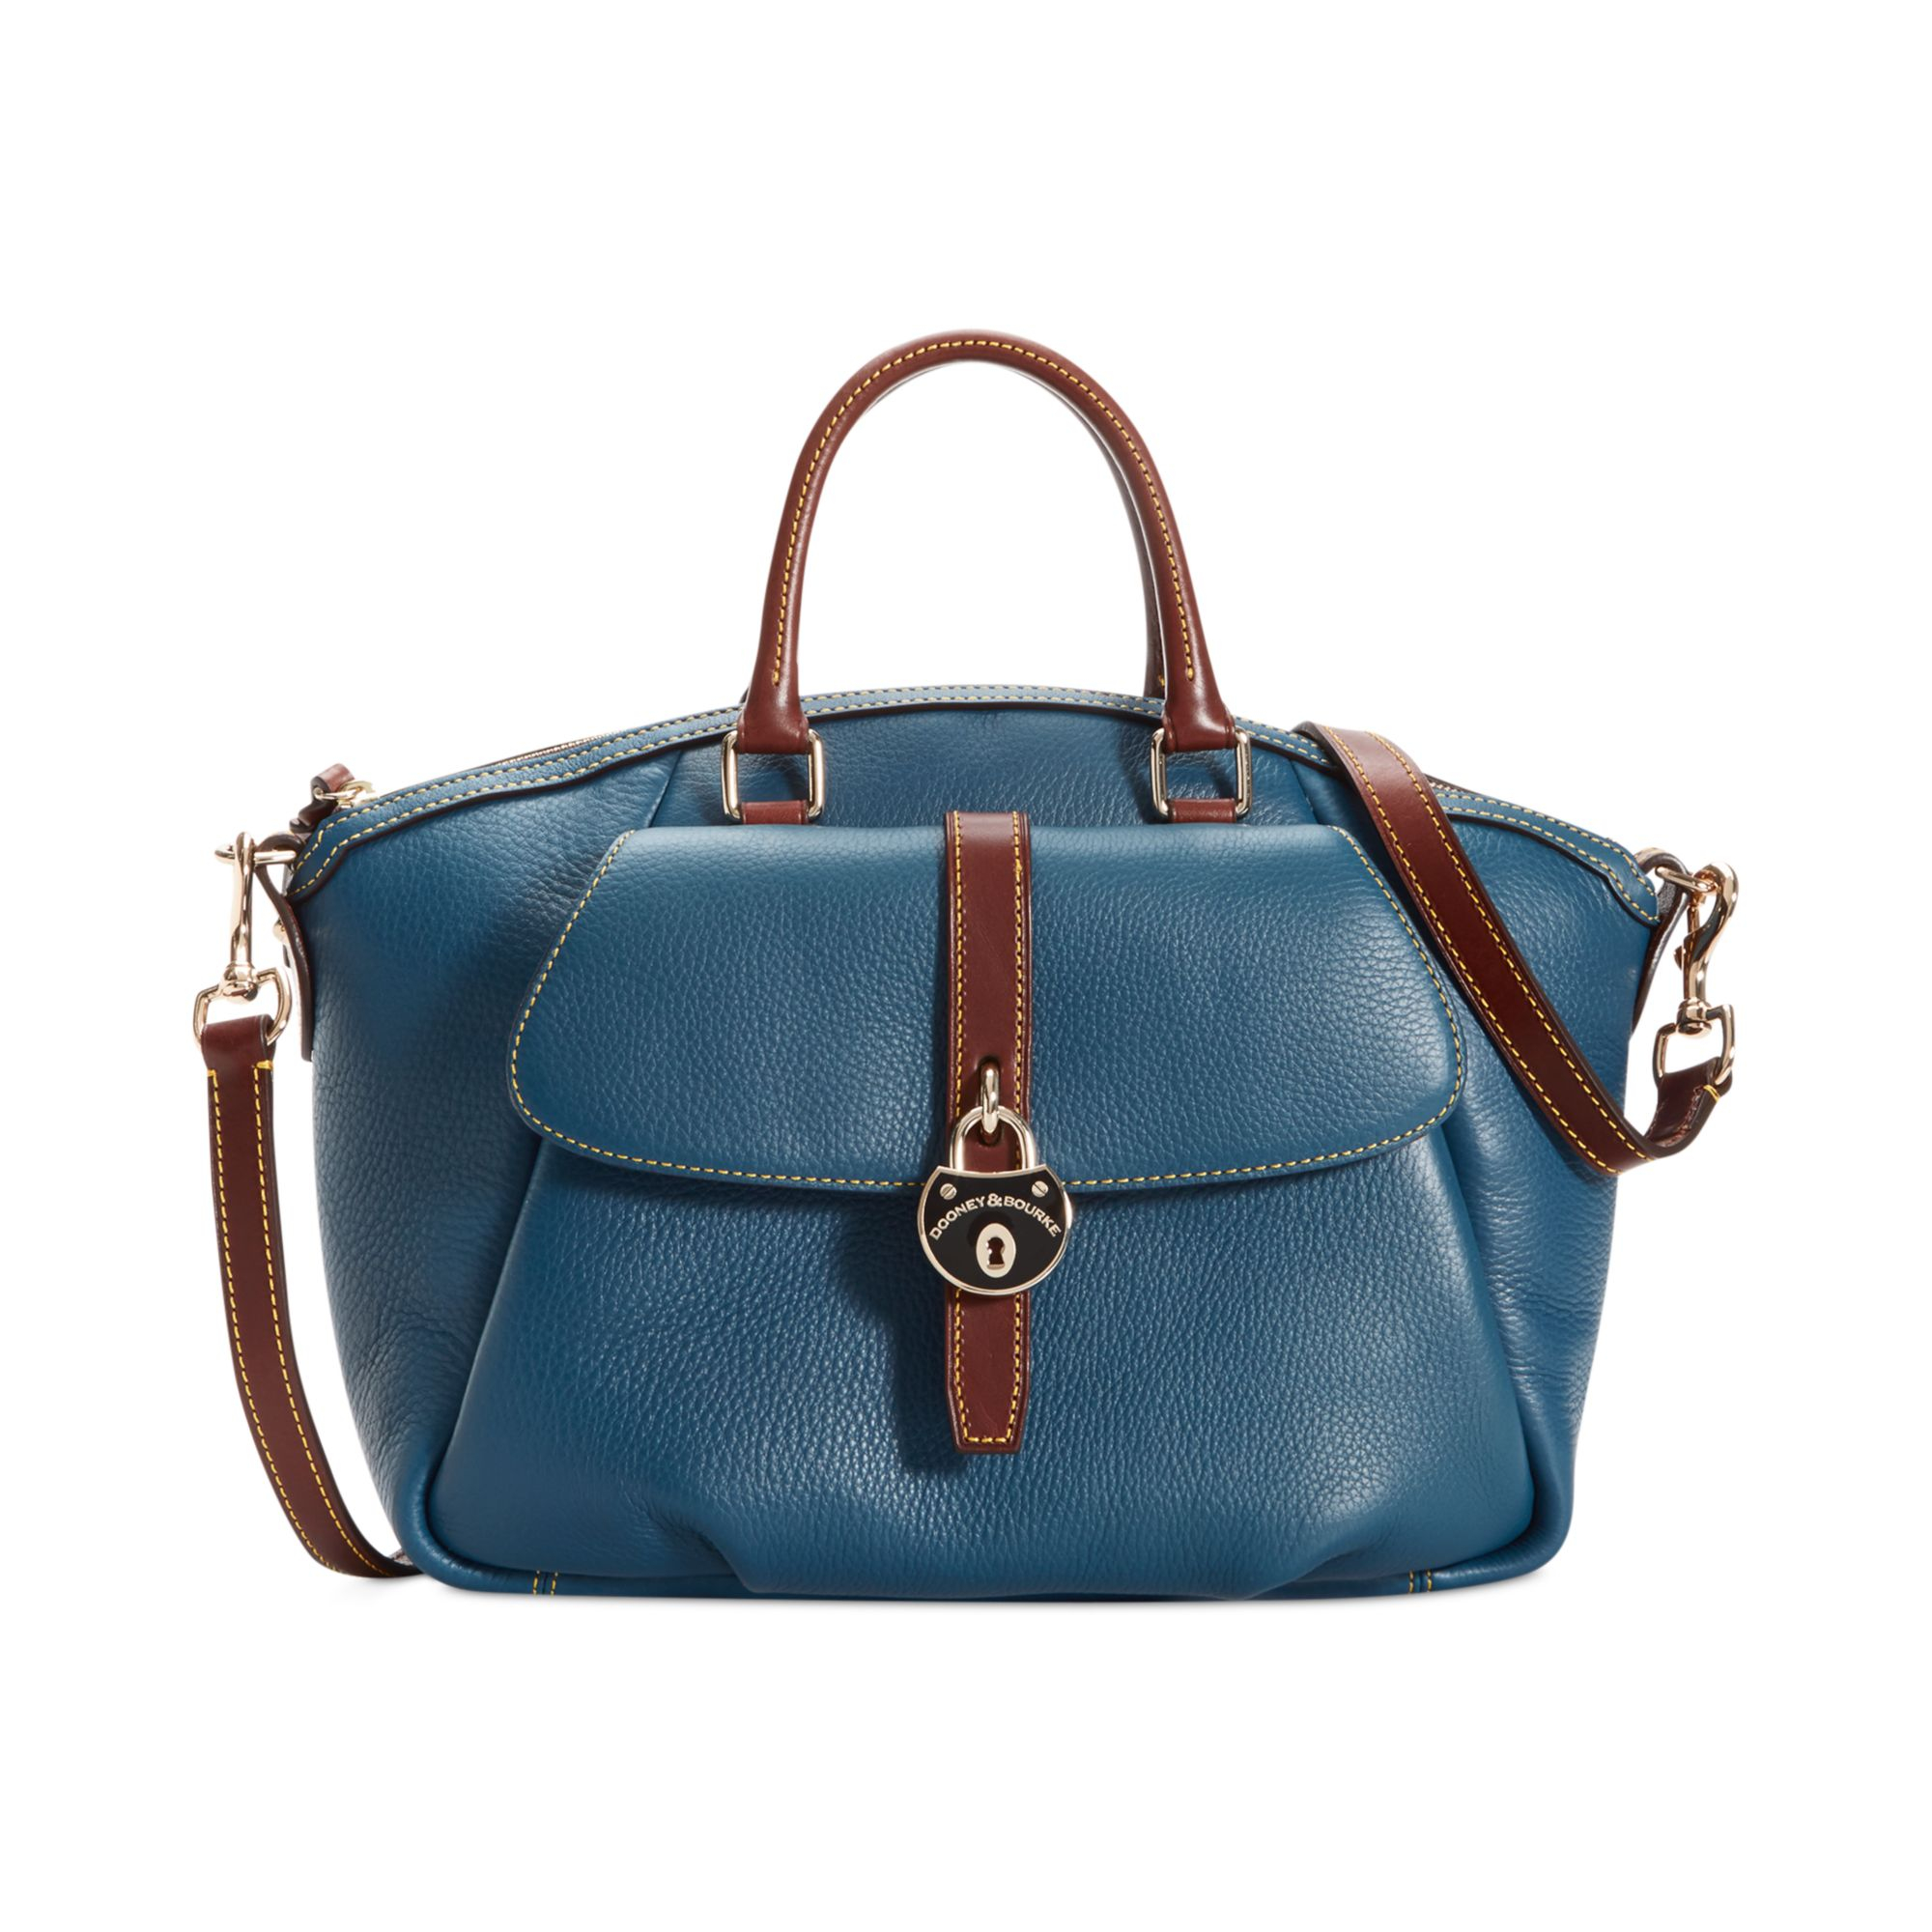 Shop new dooney and bourke handbags from Dooney & Bourke and from taboredesc.ga, Dooney & Bourke, Lord & Taylor and many more. Find thousands of new high fashion items in one place.